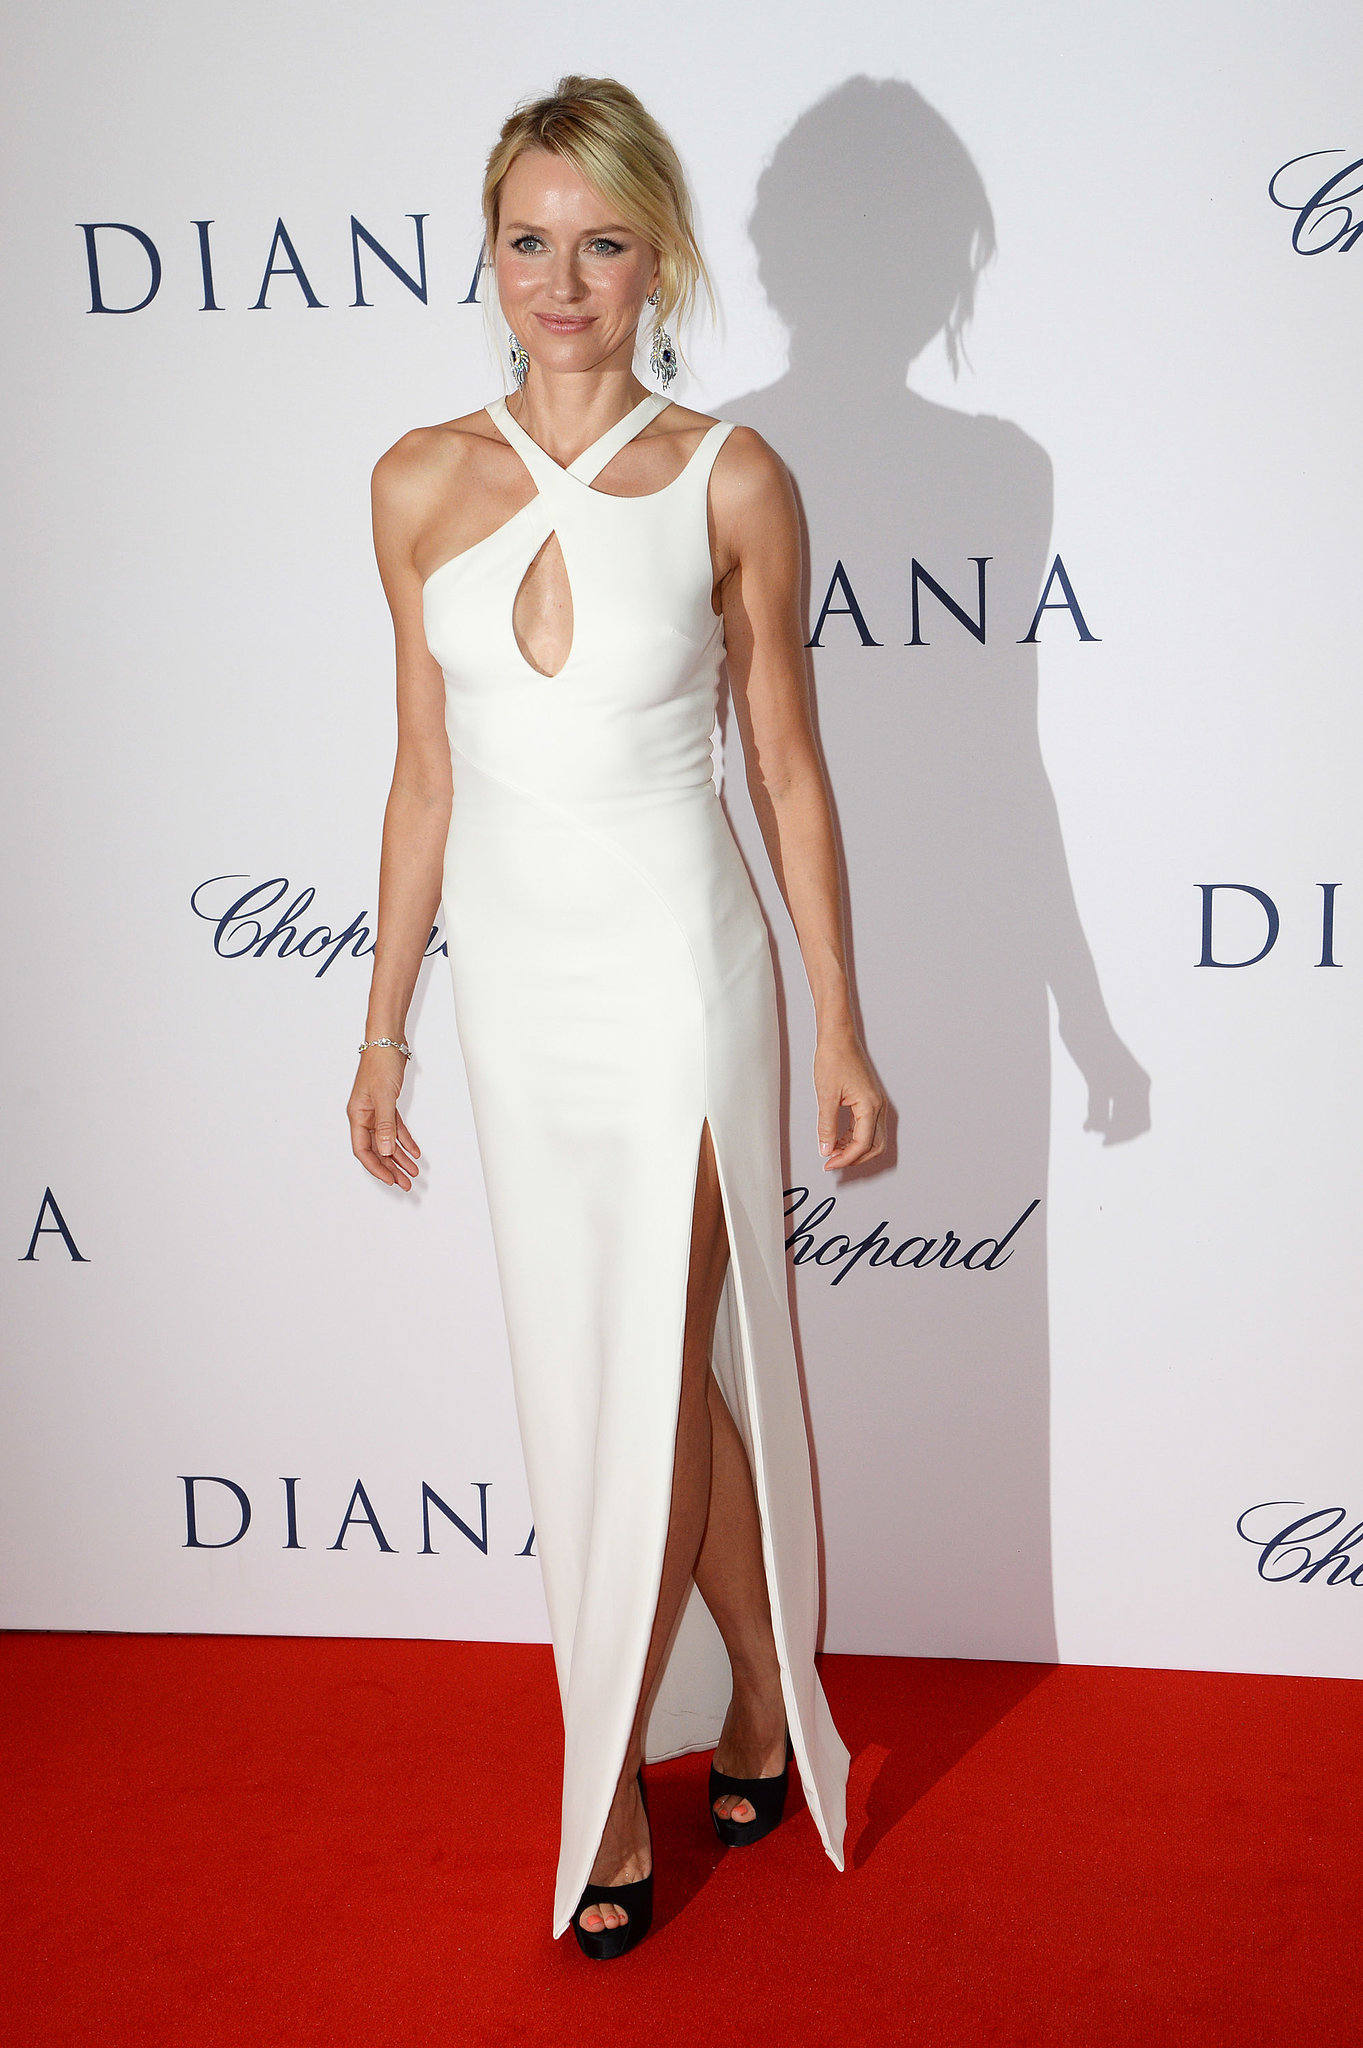 Naomi Watts Makes Her Royal Arrival at the Diana World Premiere